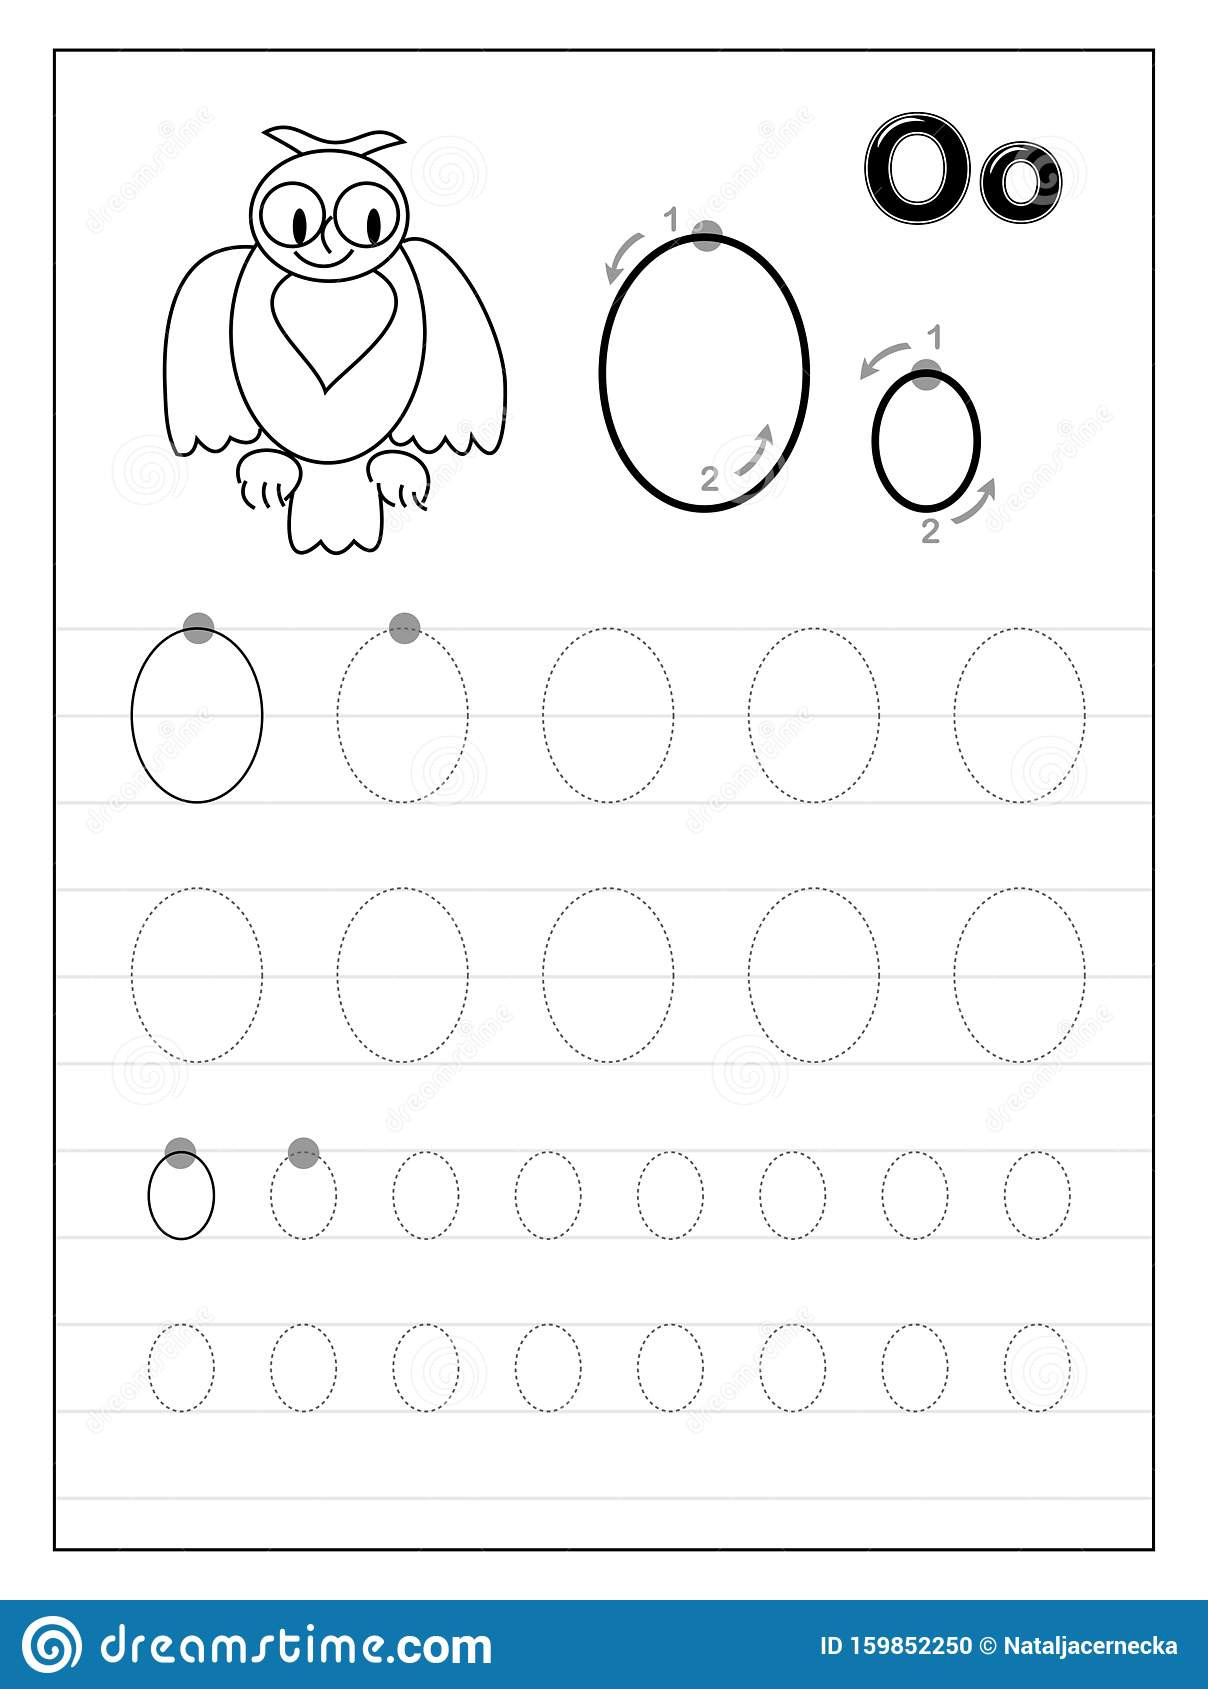 Letter O Worksheets for Preschool Tracing Alphabet Letter O Black and White Educational Pages